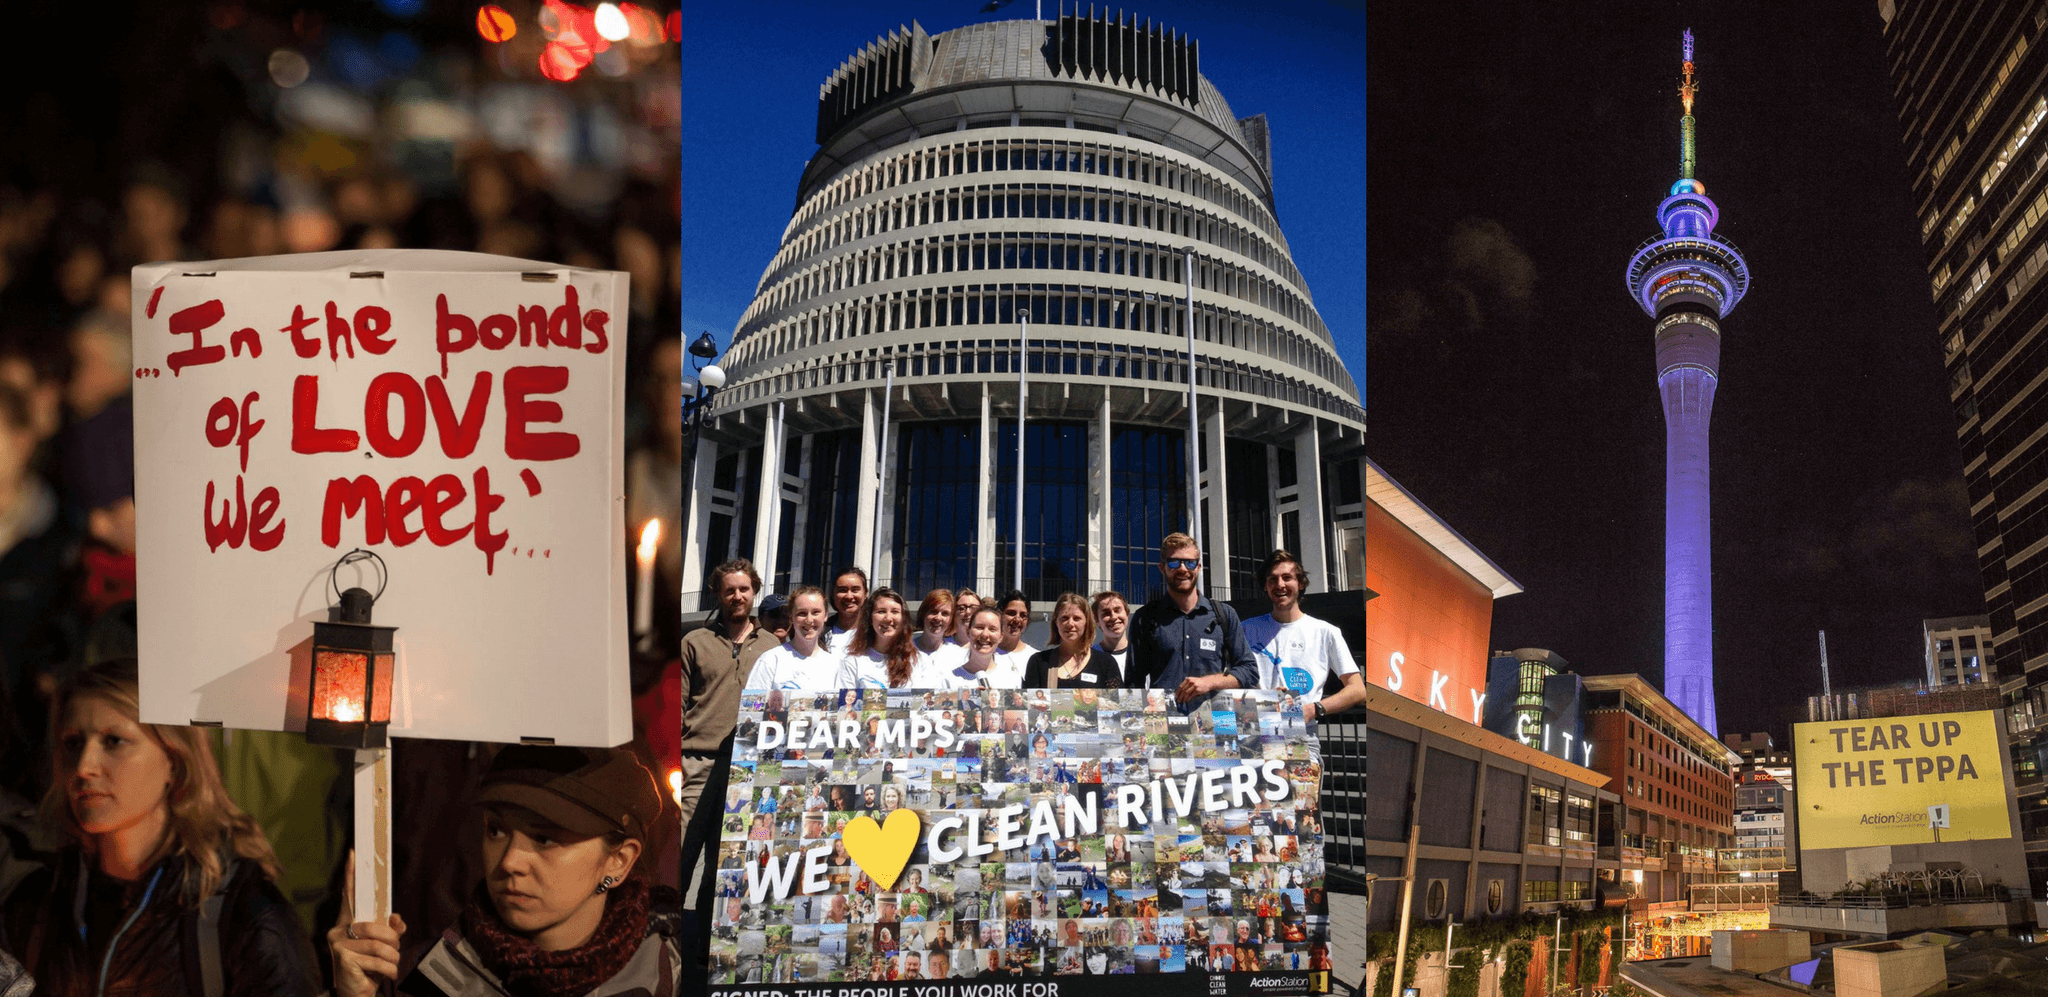 A group of people in front of the beehive with a sign asking MPs for clean rivers